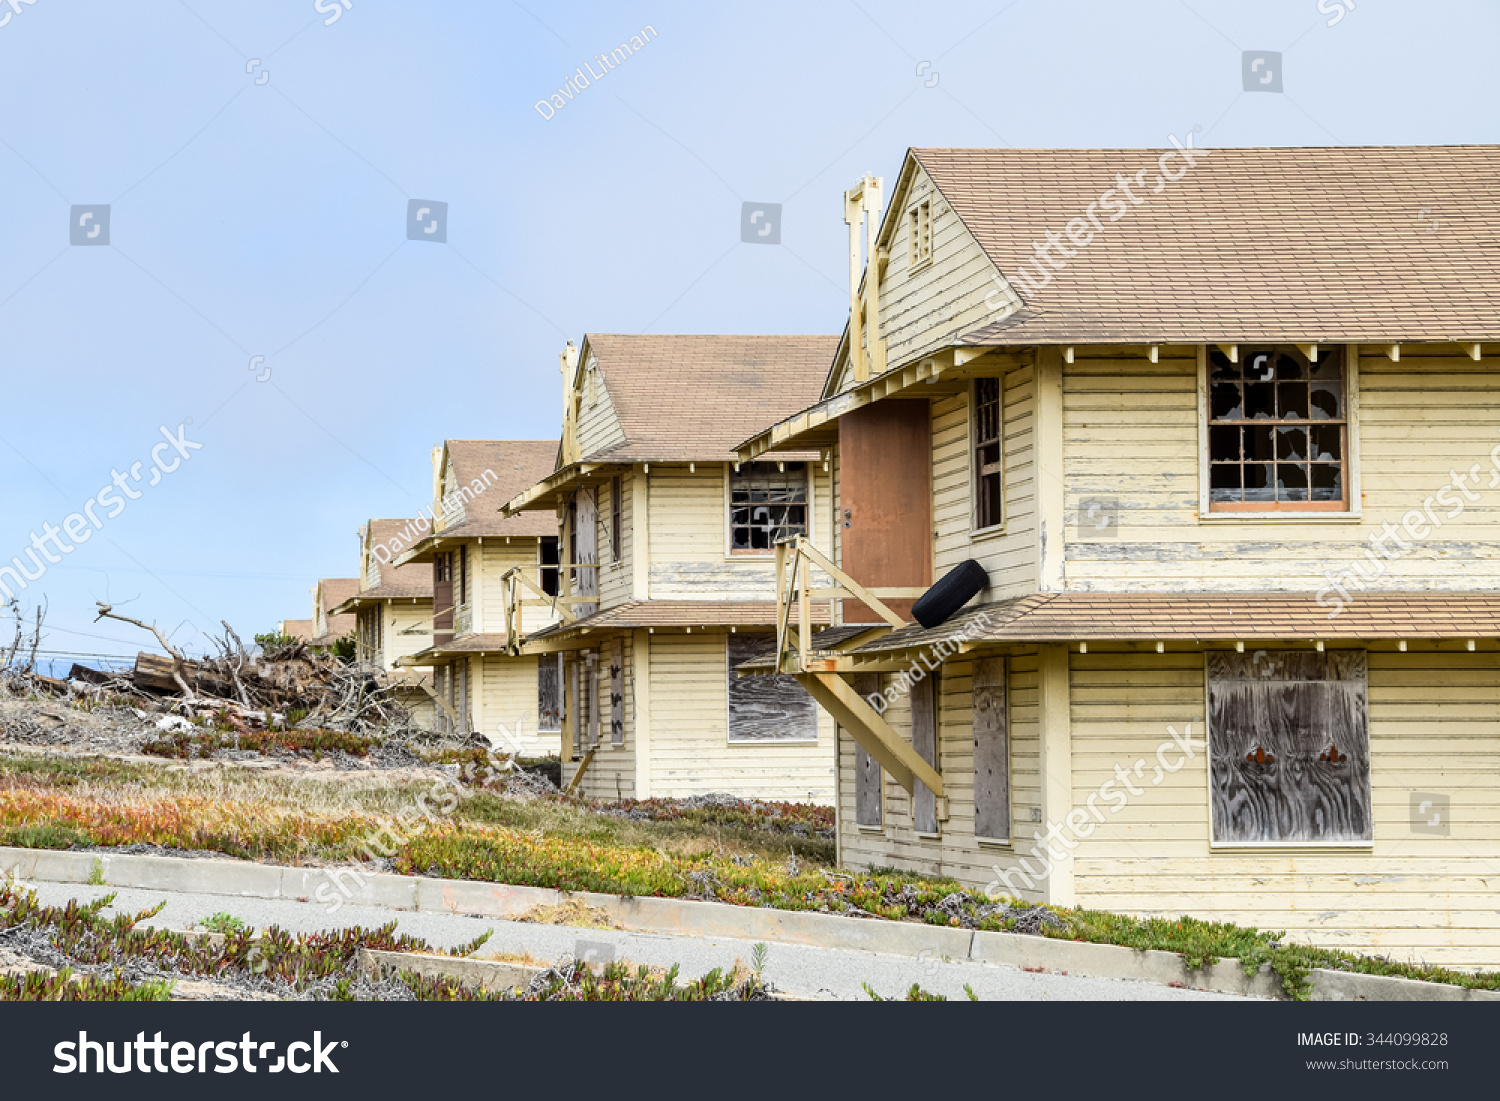 Marina, California, USA - July 3, 2015: The old military barracks at Fort Ord have been abandoned since 1994.